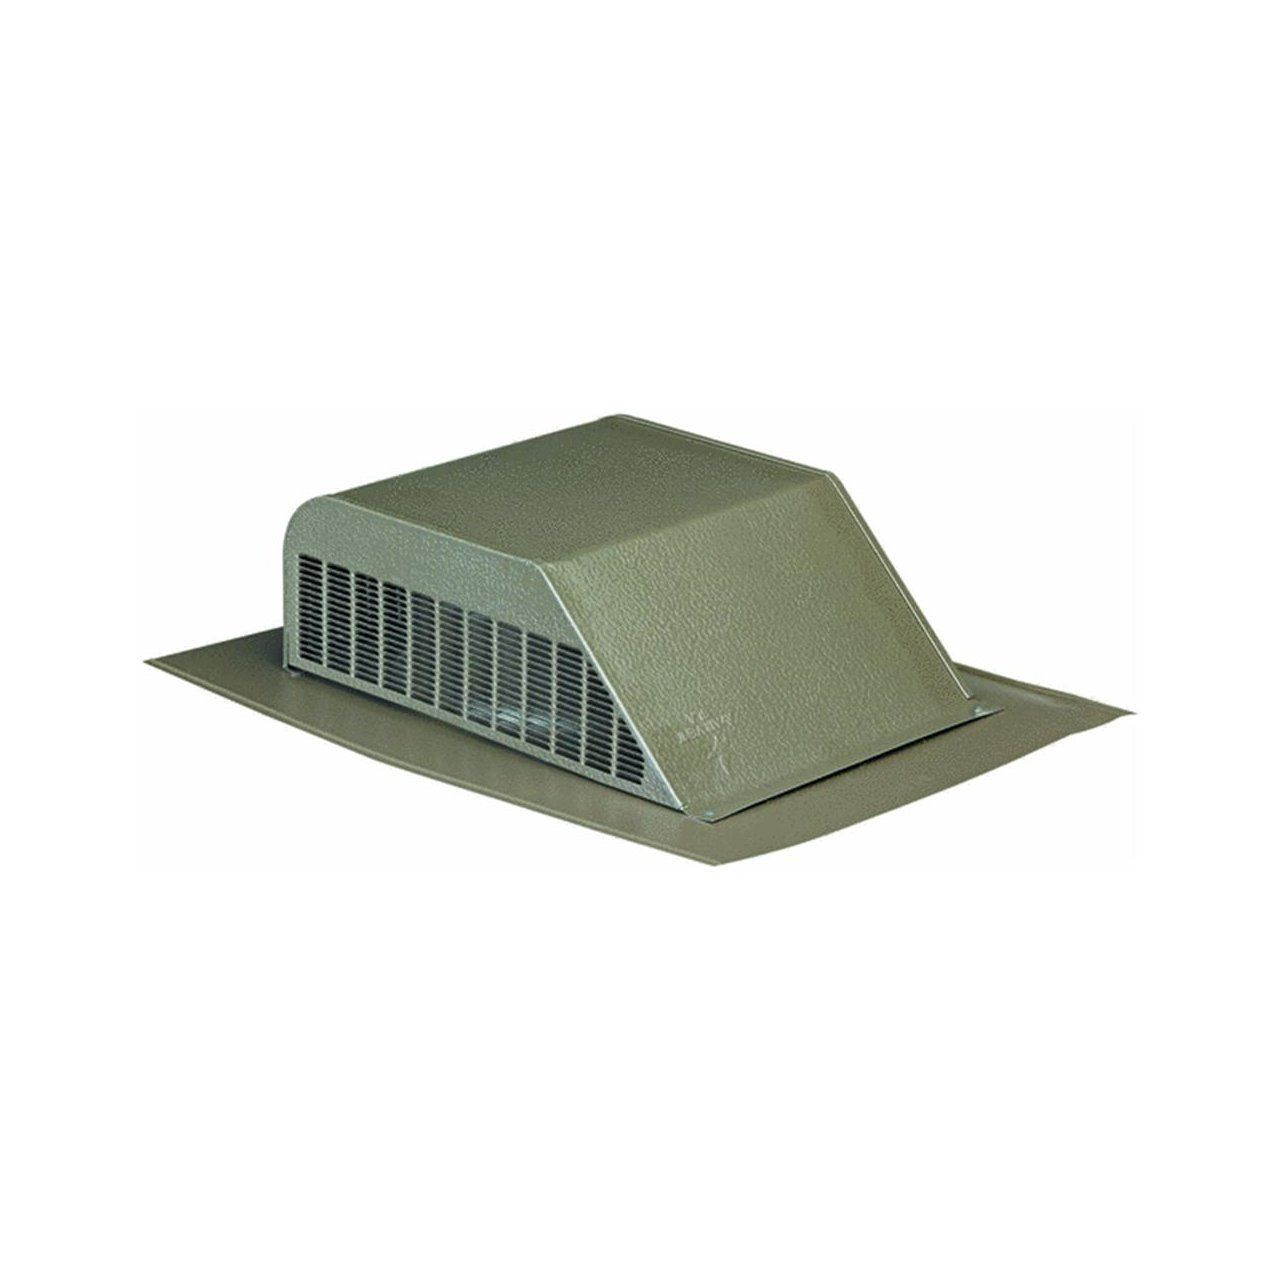 50 Airhawk Galvanized Slant Back Roof Vent Pack Of 9 Want To Know More Click On The Image Roof Vents Galvanized Roof